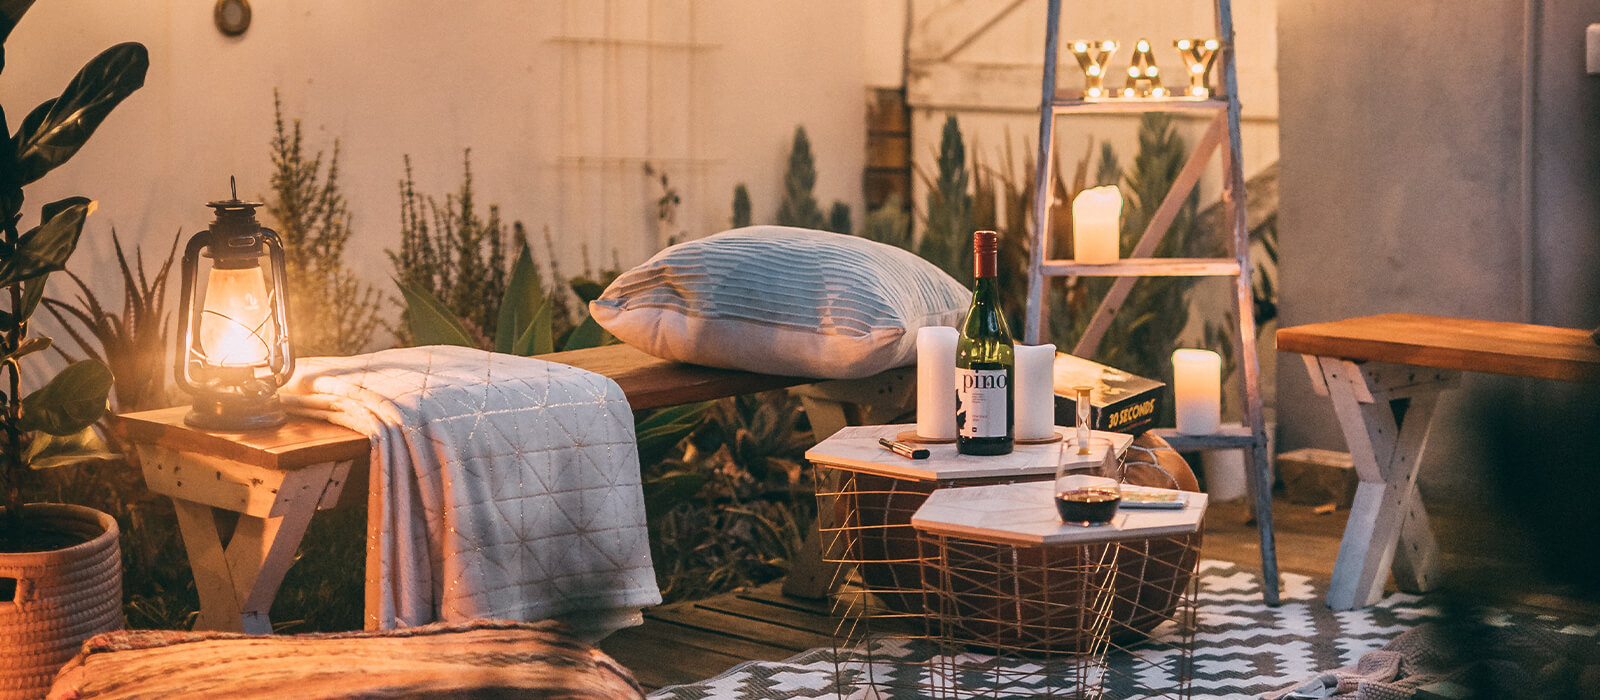 5 Tips for Creating the Ultimate Outdoor Entertaining Area